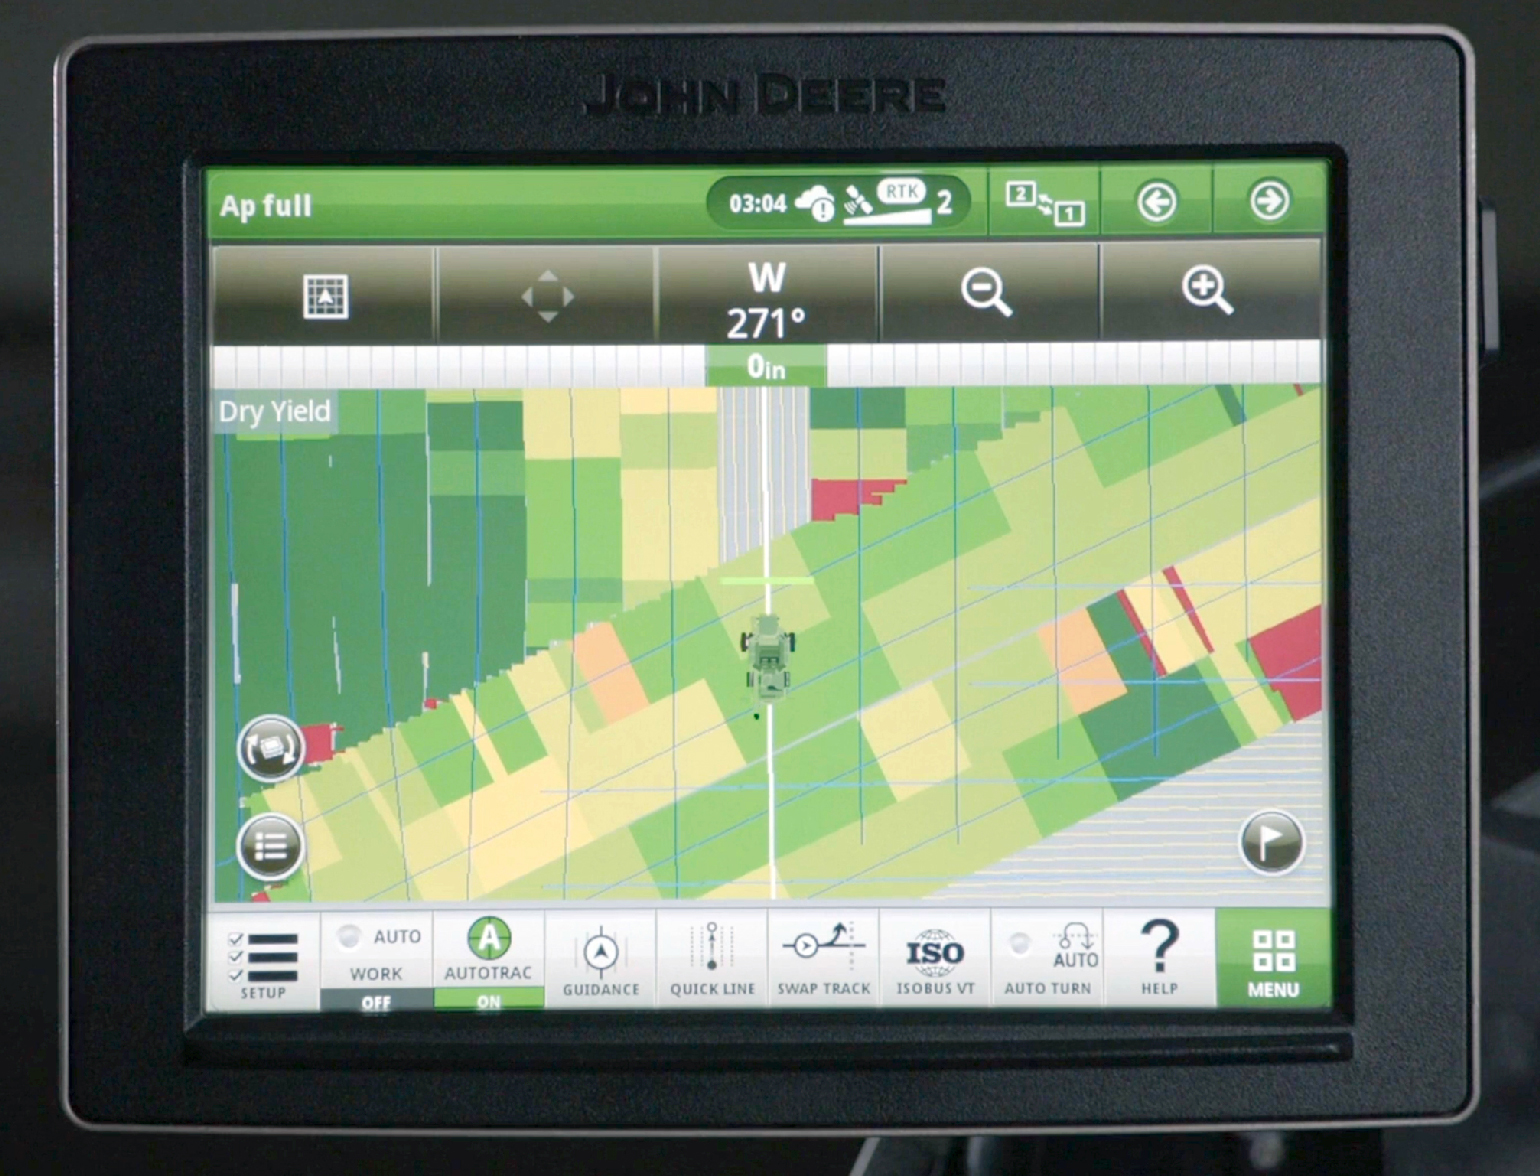 Deere updates key tech, makes software buy, Cloud Pocket 365